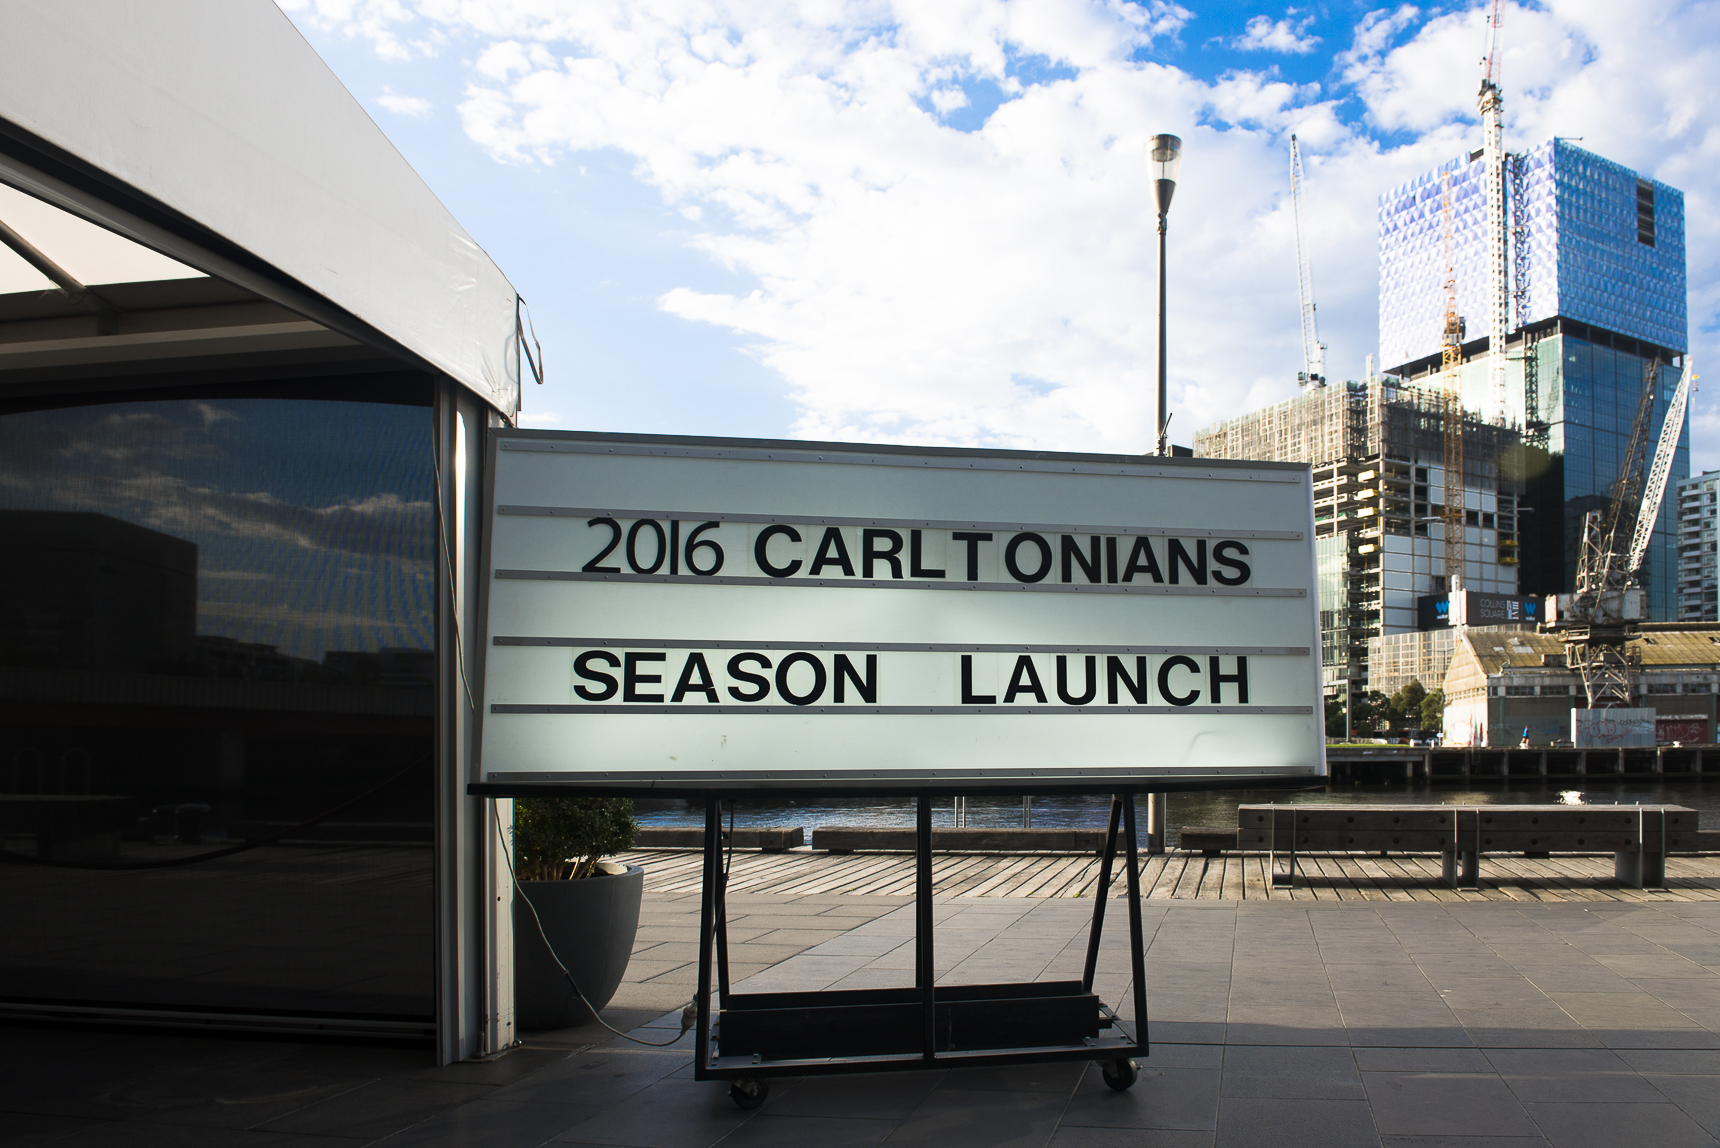 2016 Season Launch Image